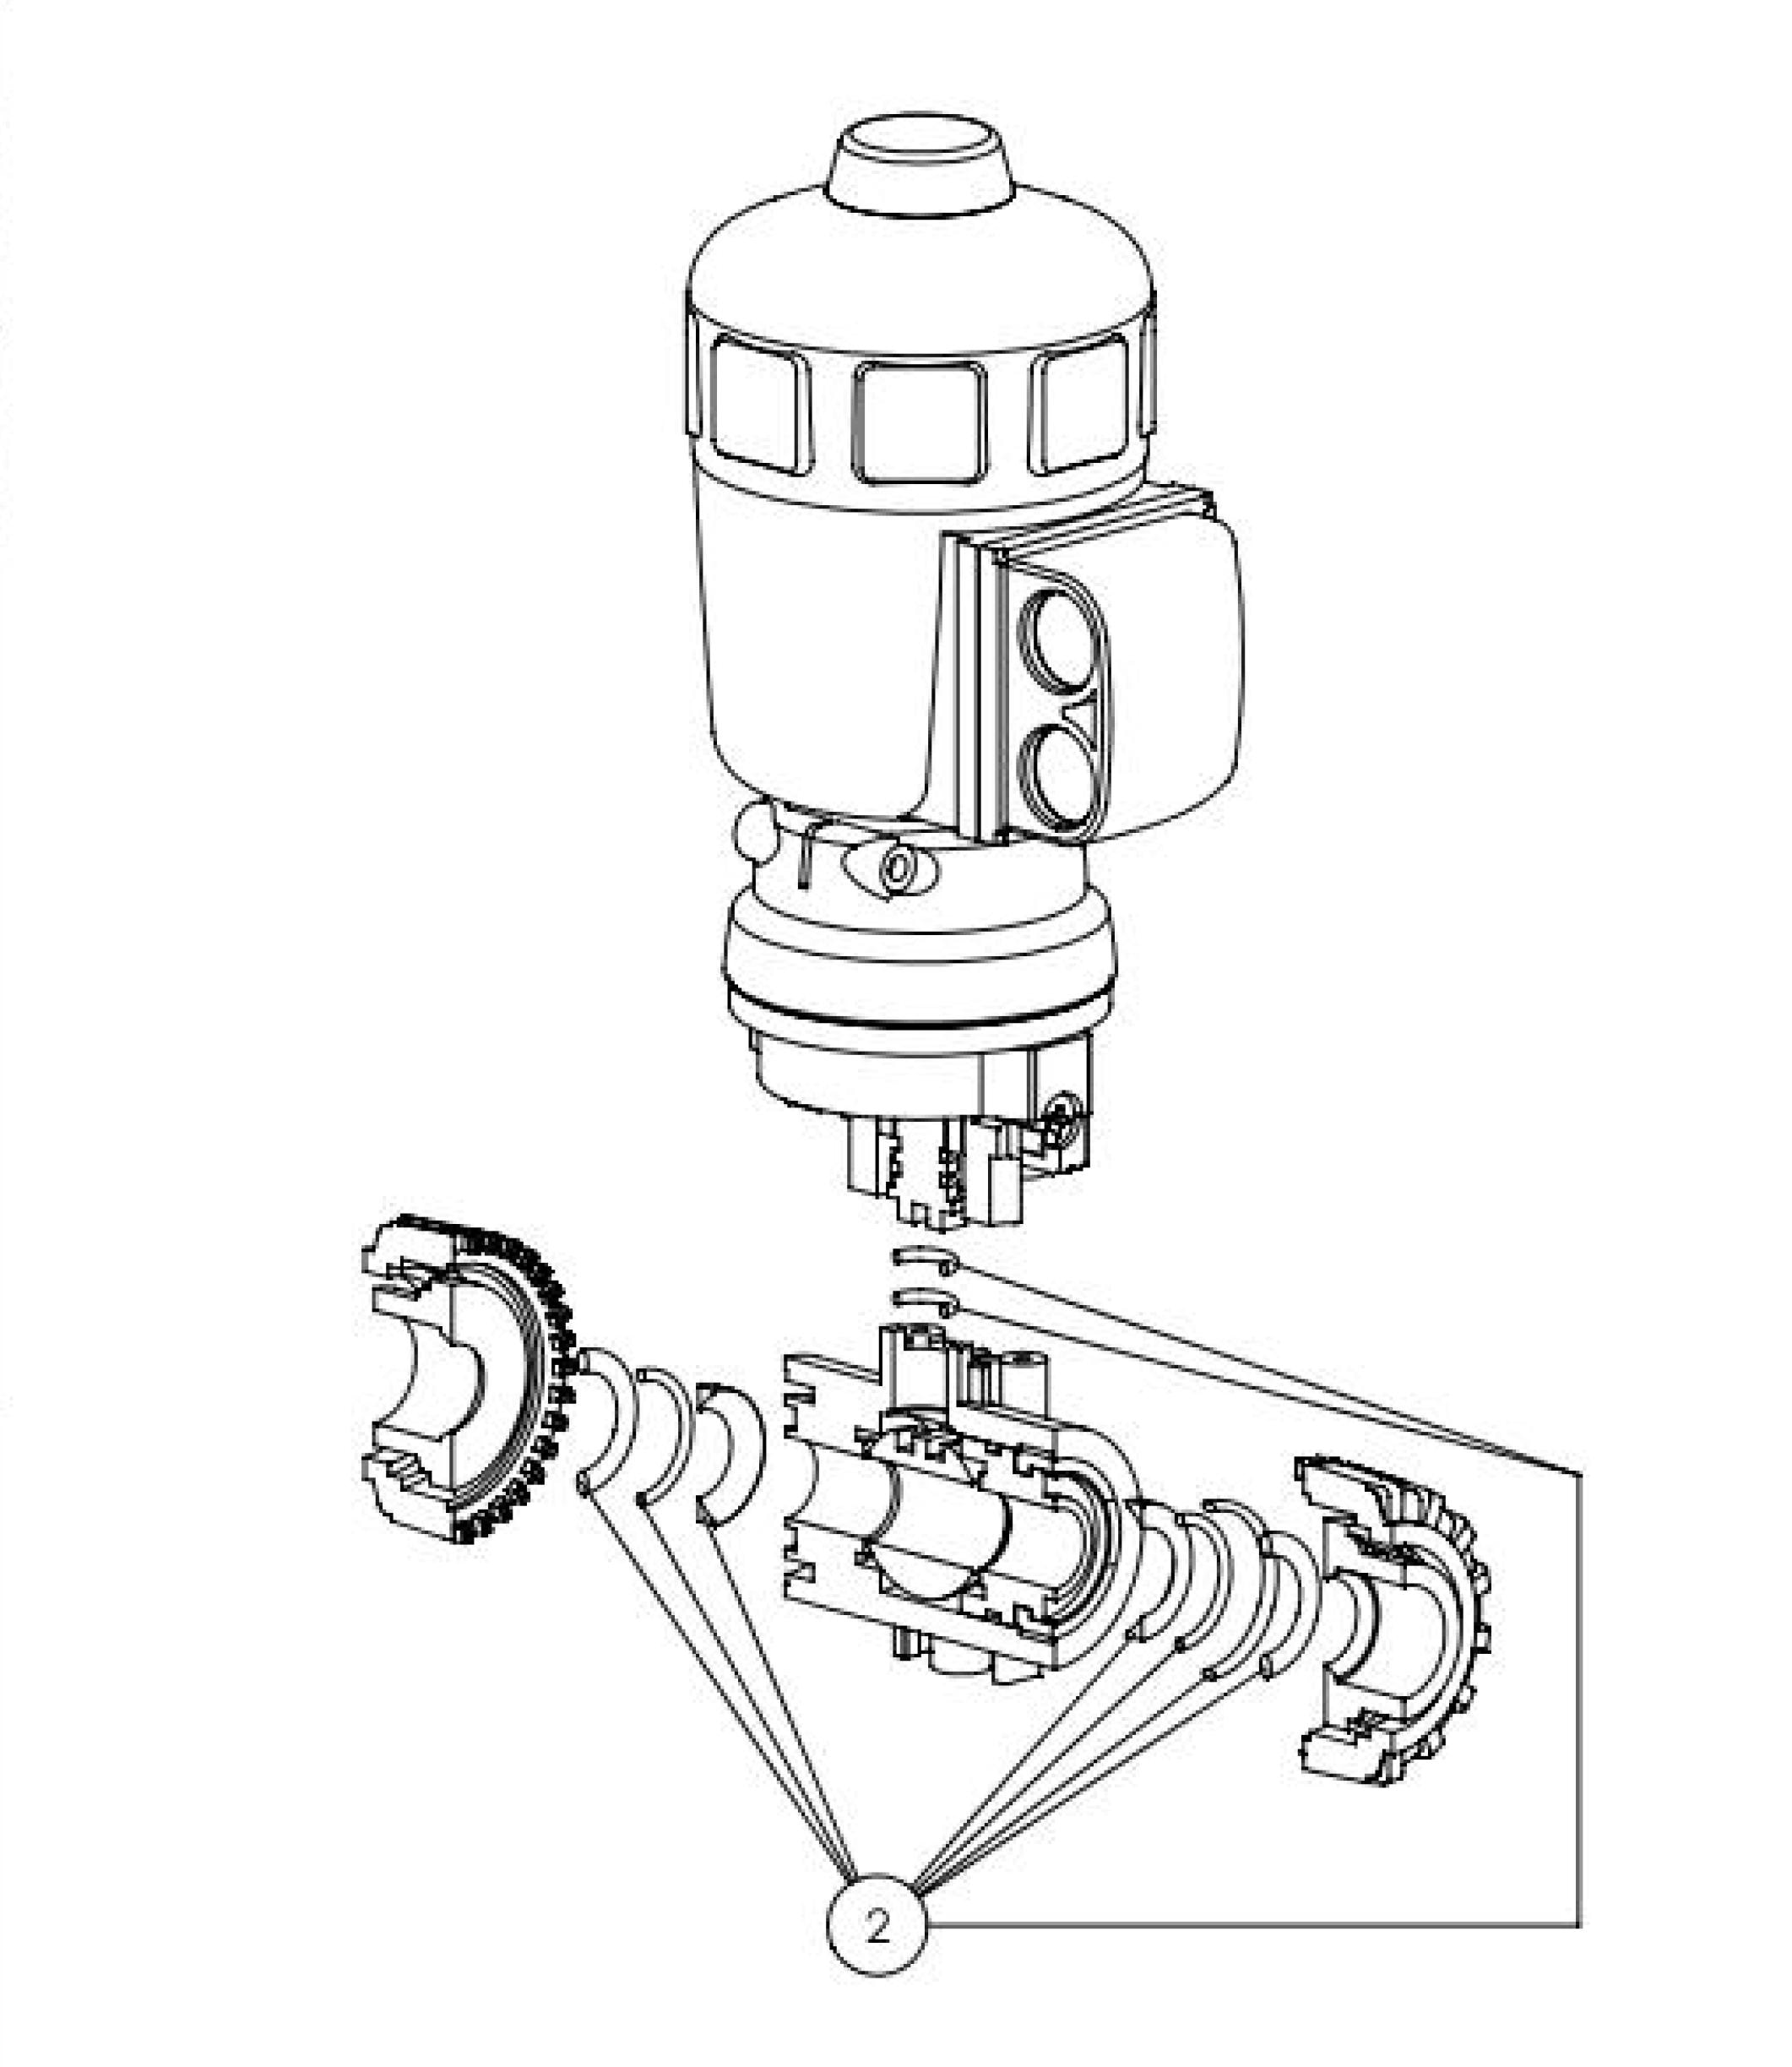 type 2658 2 2 way ball valve with pneumatic rotary actuator Places to See in Aruba 9000225007